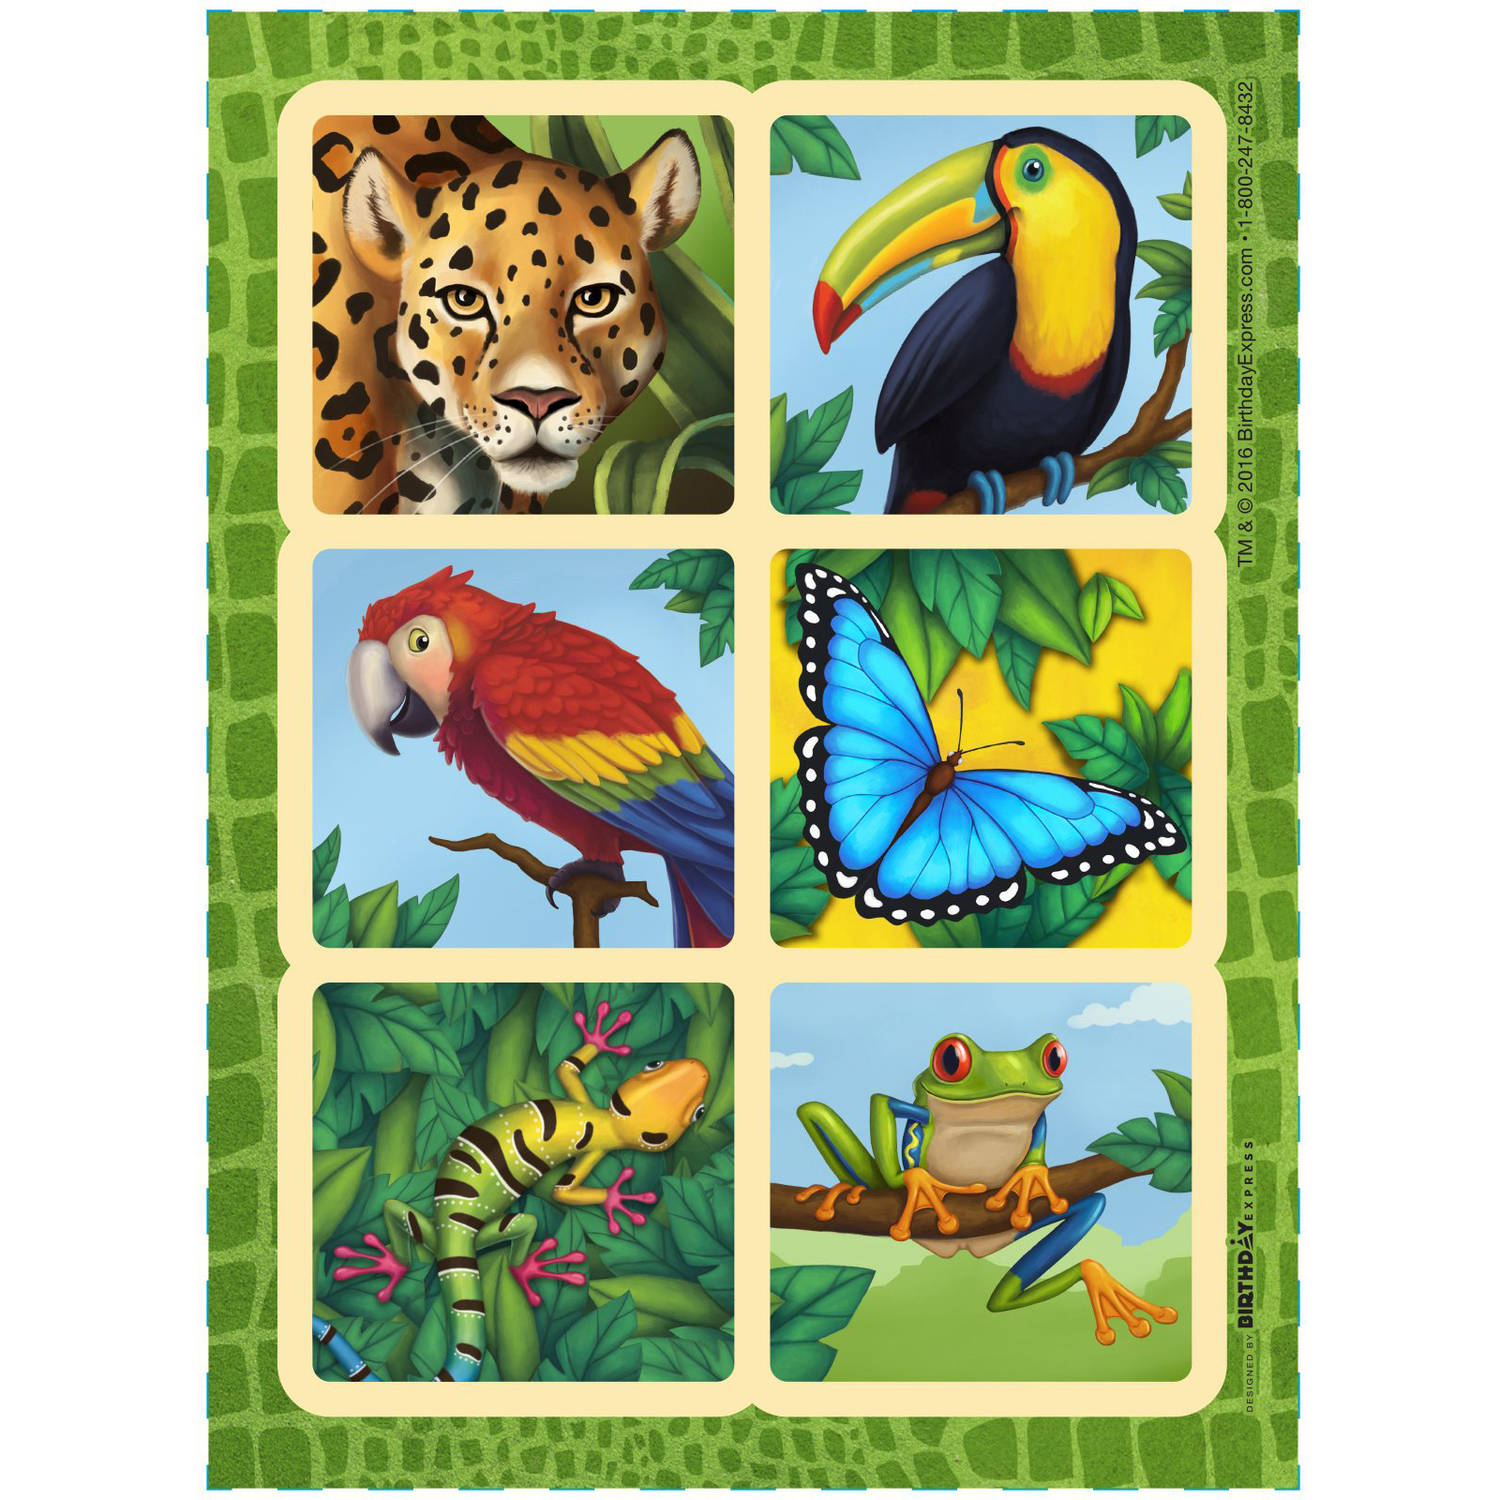 Jungle Party Sticker Sheets, 4-Pack